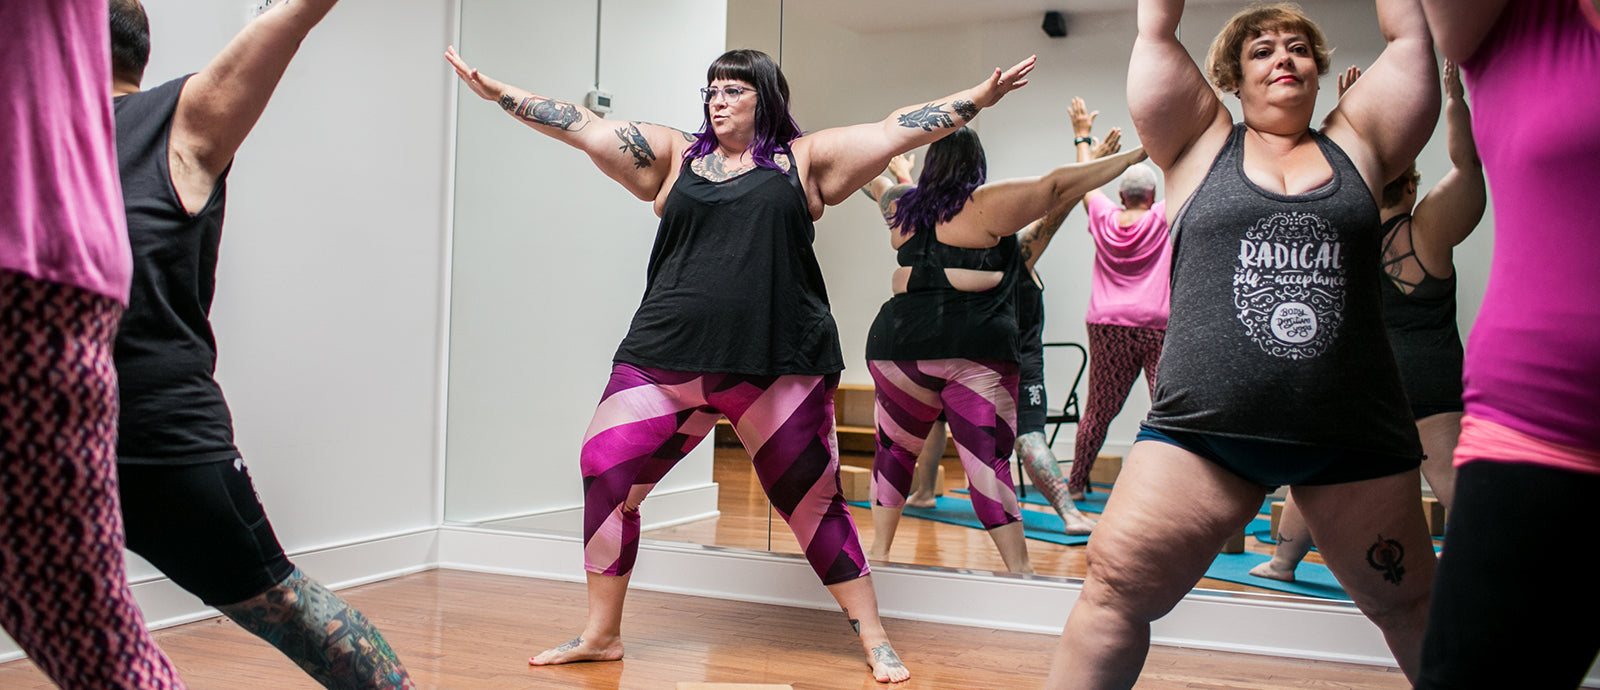 Amber Karnes, Body Positive Yoga, teaching class